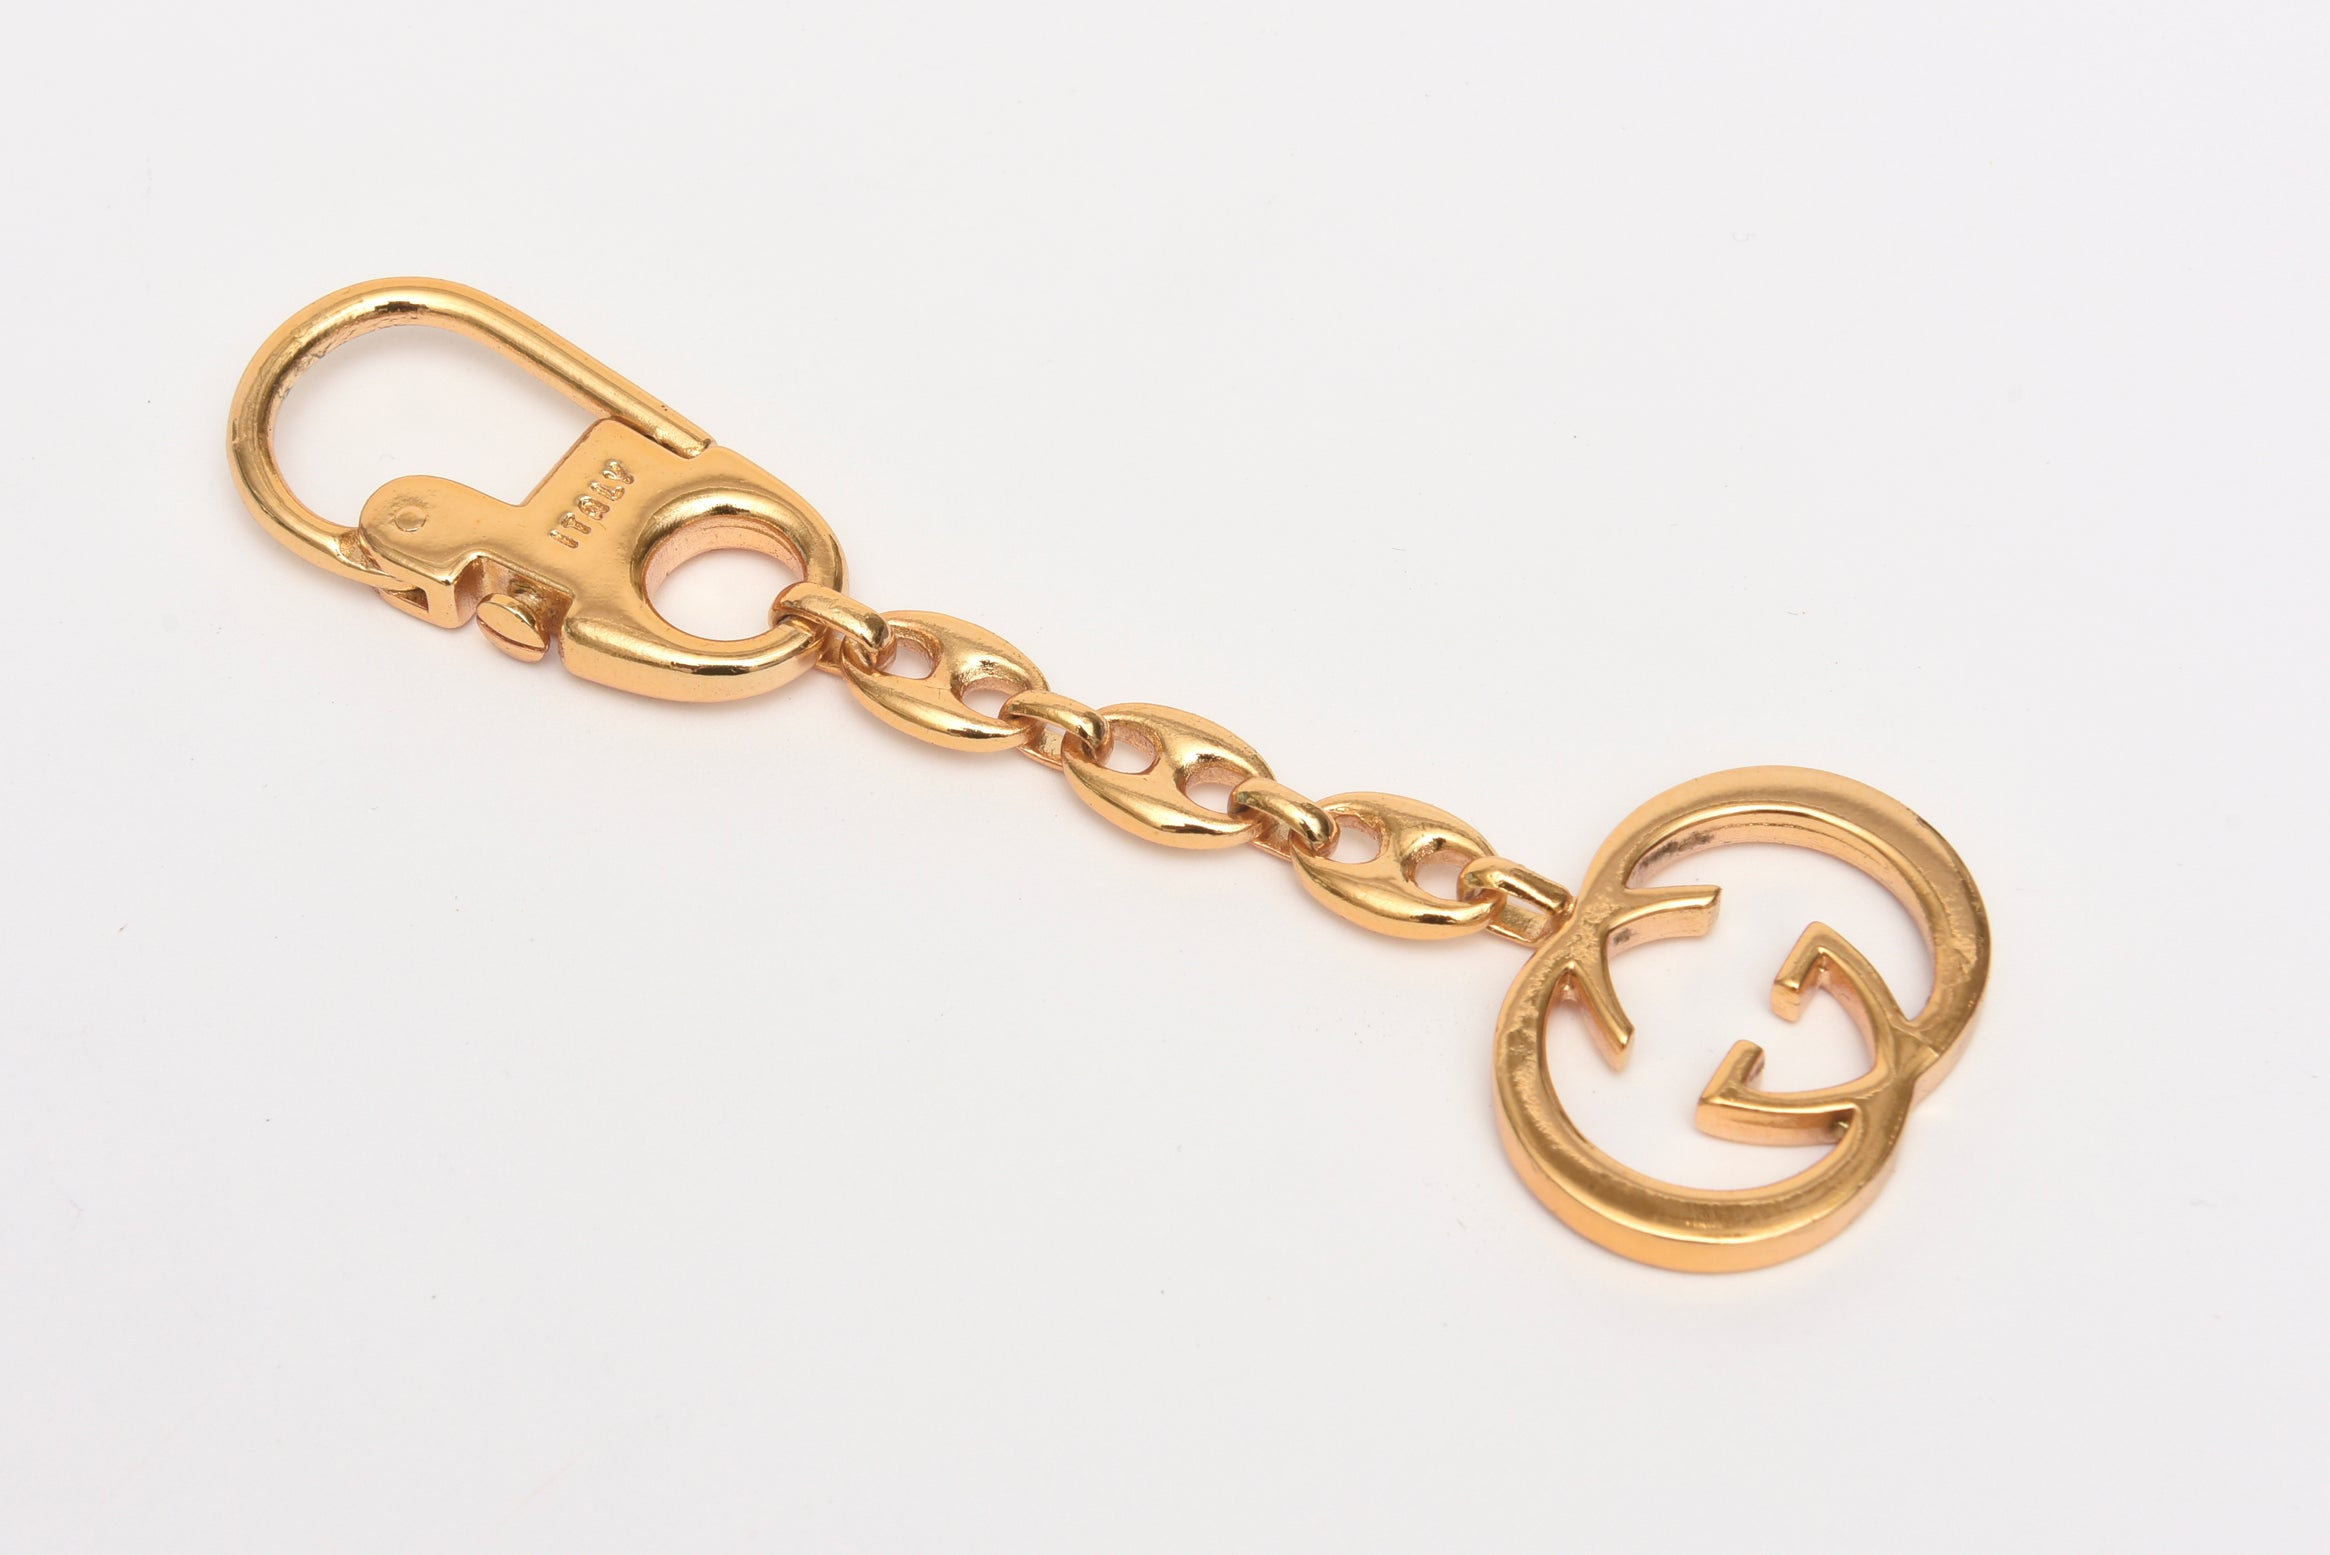 755aabcbbf7 Vintage Gucci Gold Plated Keychain at 1stdibs